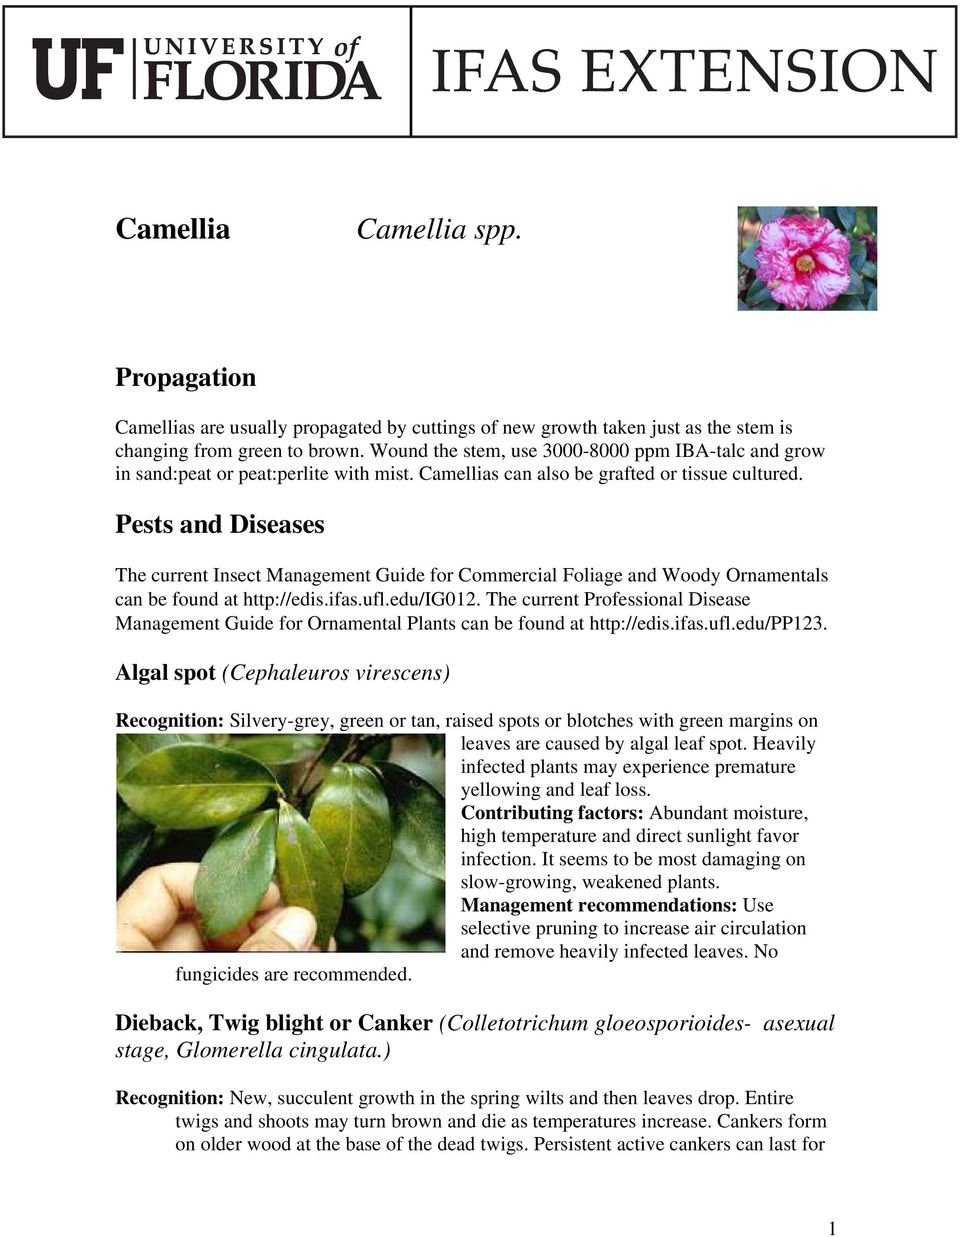 Pests and Diseases The current Insect Management Guide for Commercial Foliage and Woody Ornamentals can be found at http://edis.ifas.ufl.edu/ig012.